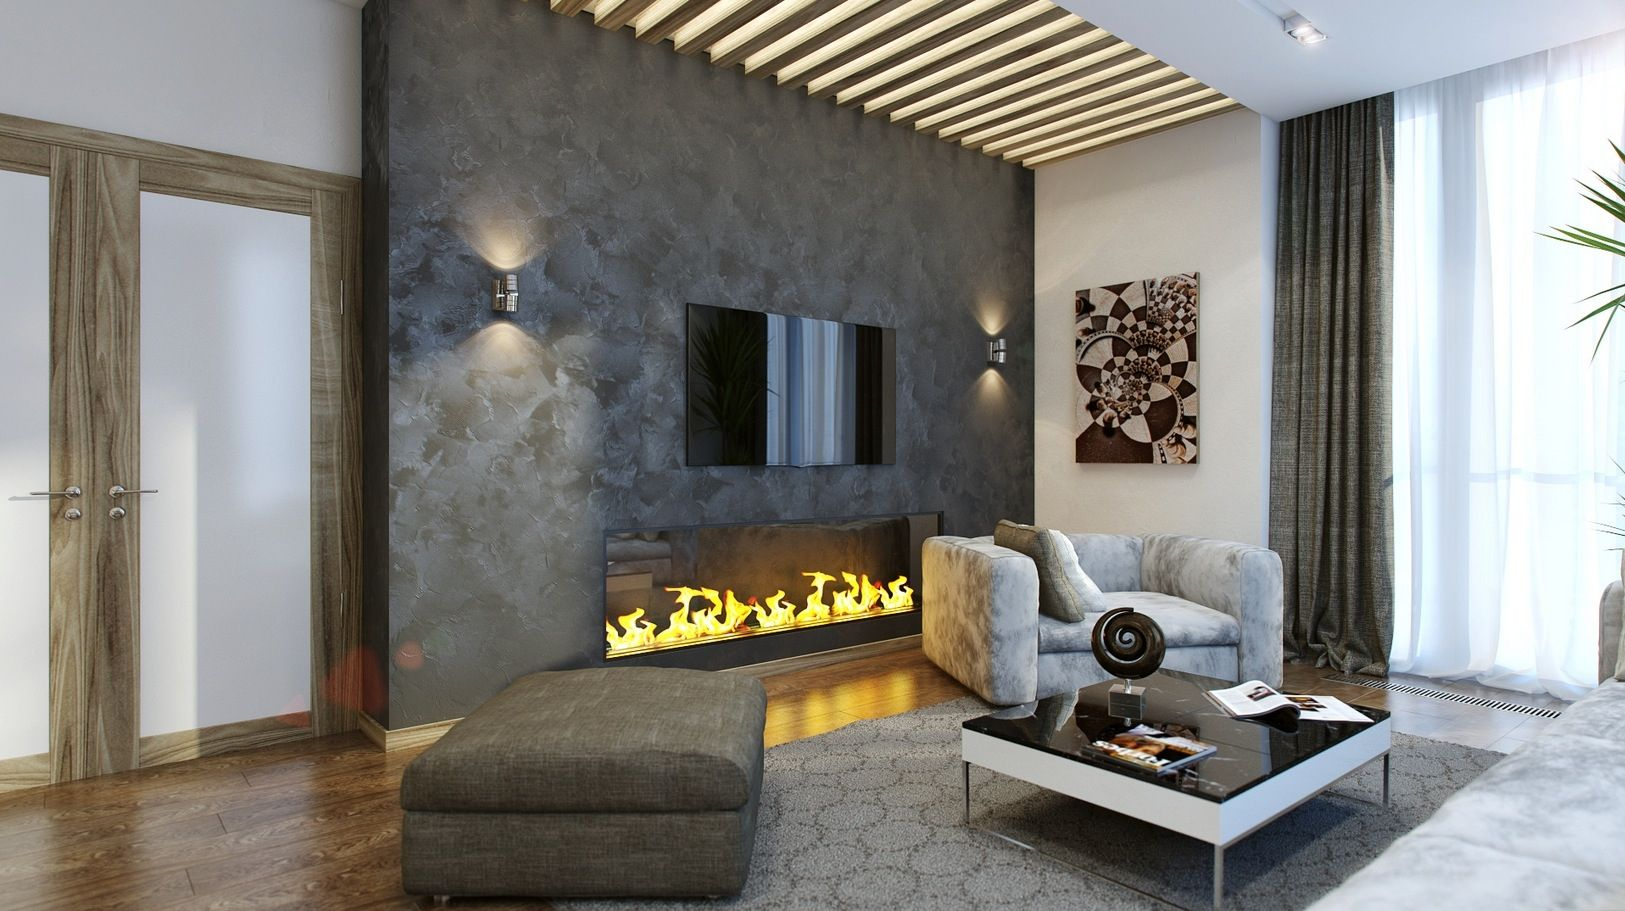 New fireplace with tv eclectic family room minneapolis - Decorate Living Room Design Interior Awesome Big Gray Wall Stone Built Fireplace Modern Neutral Colored Ideas